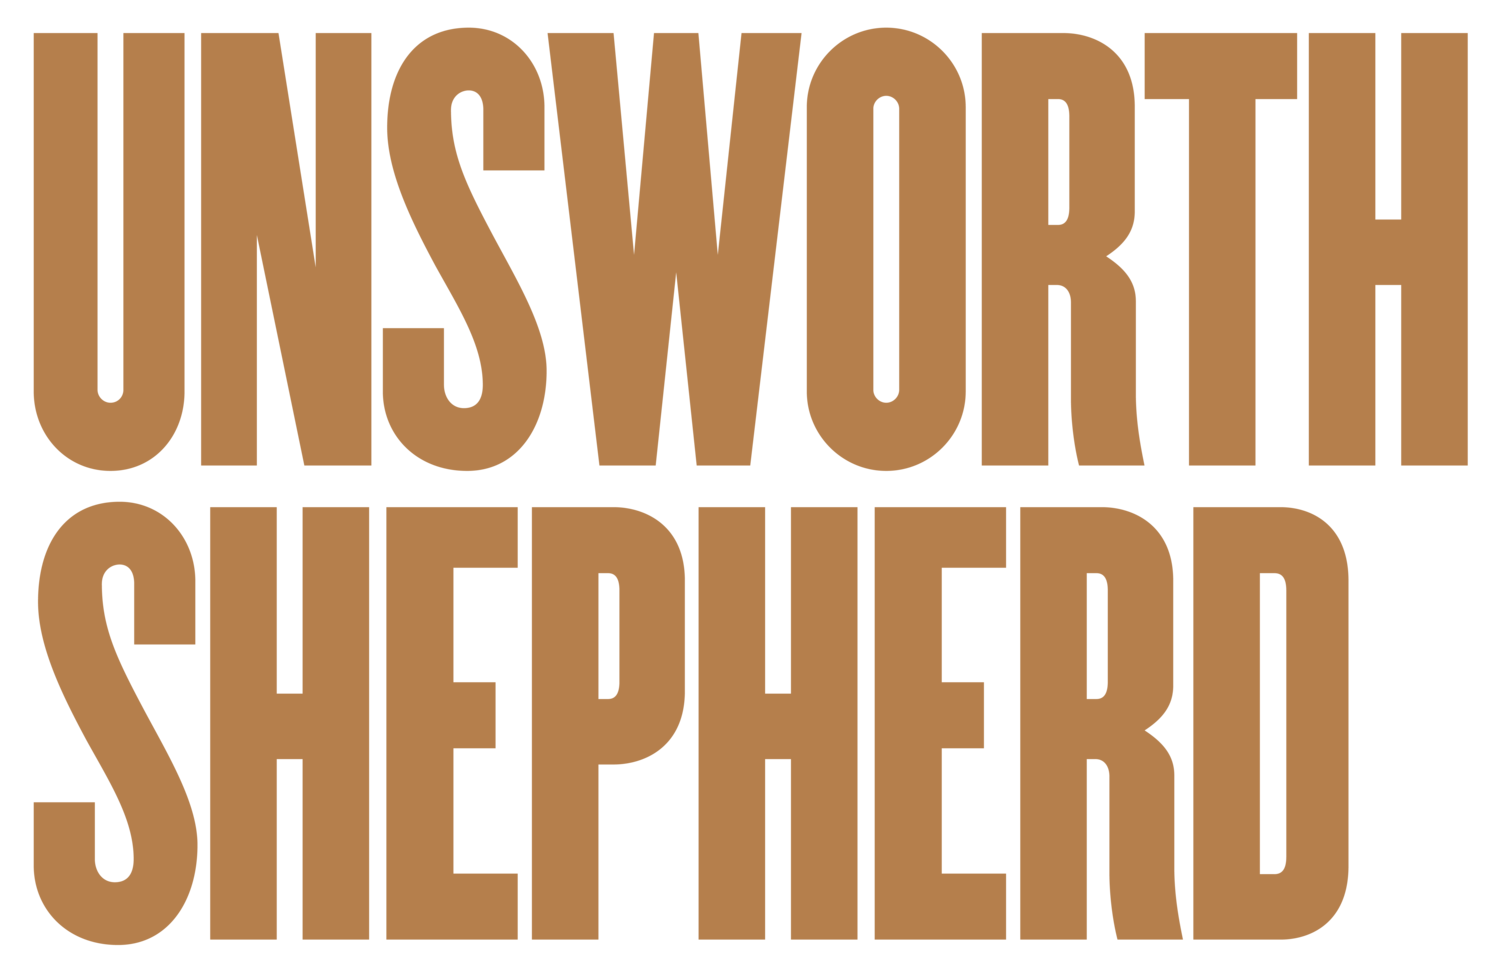 Unsworth Shepherd (US)